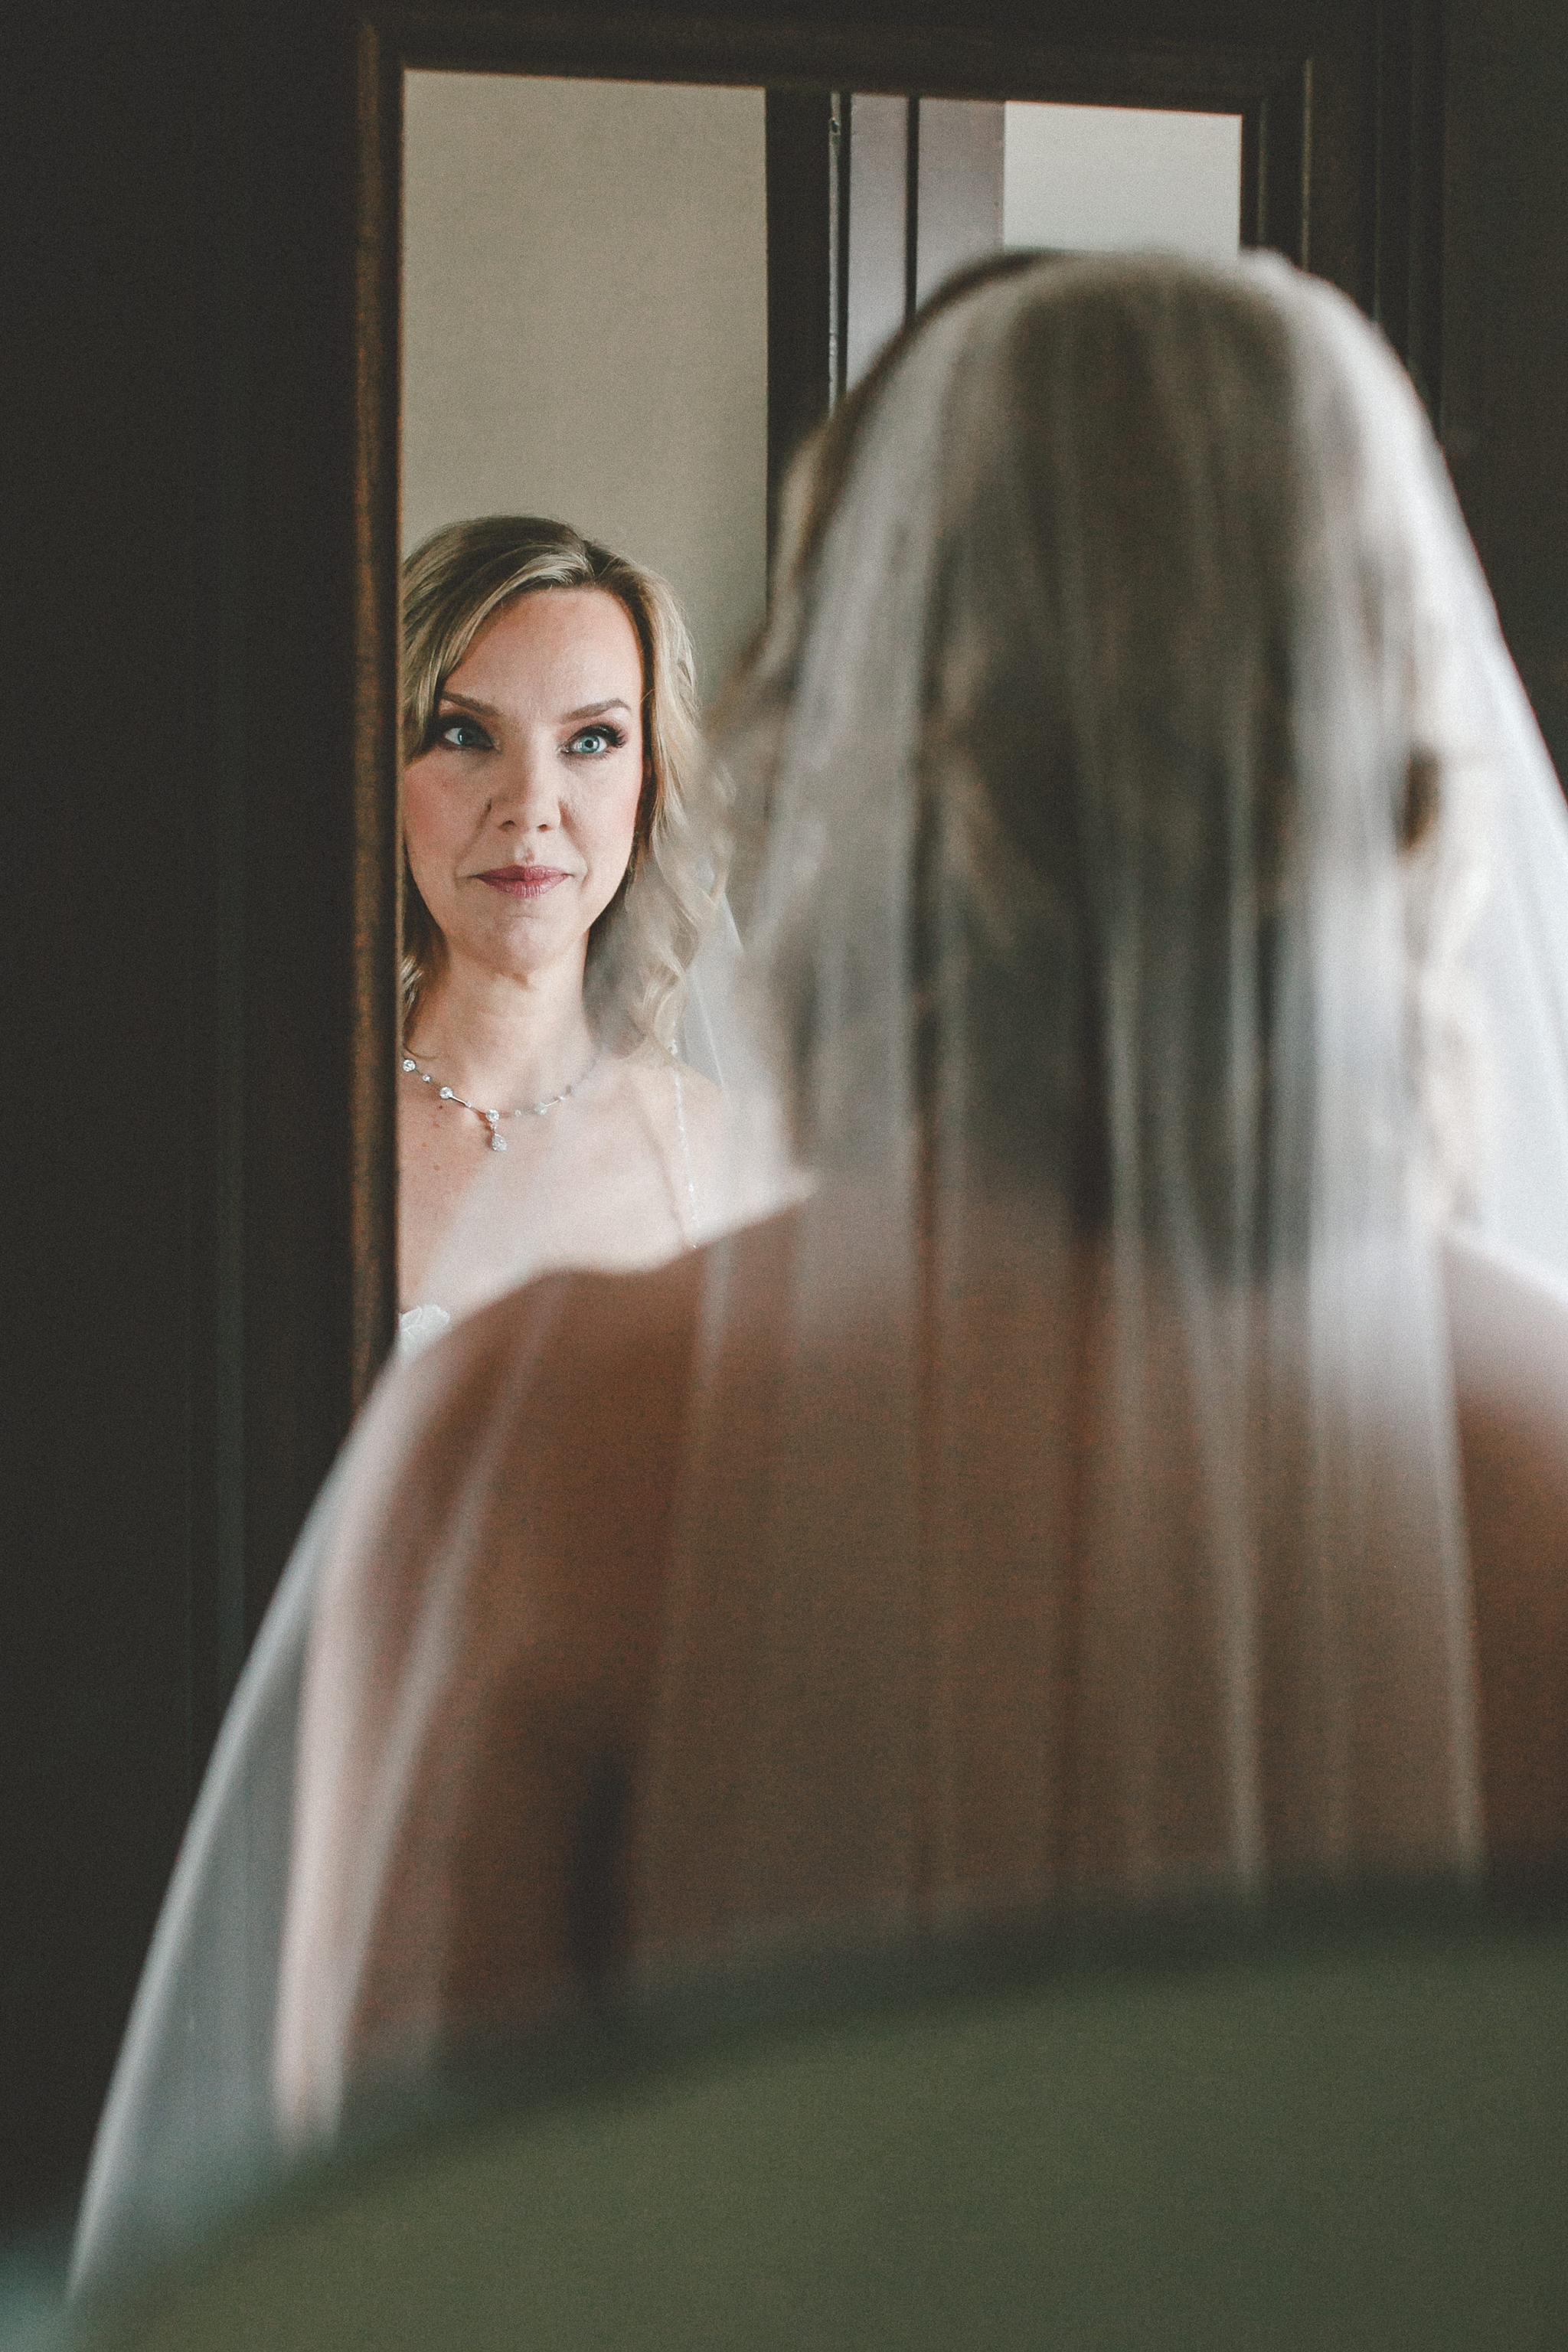 hotel_baker_st_charles_IL_wedding_photographer_0008.jpg